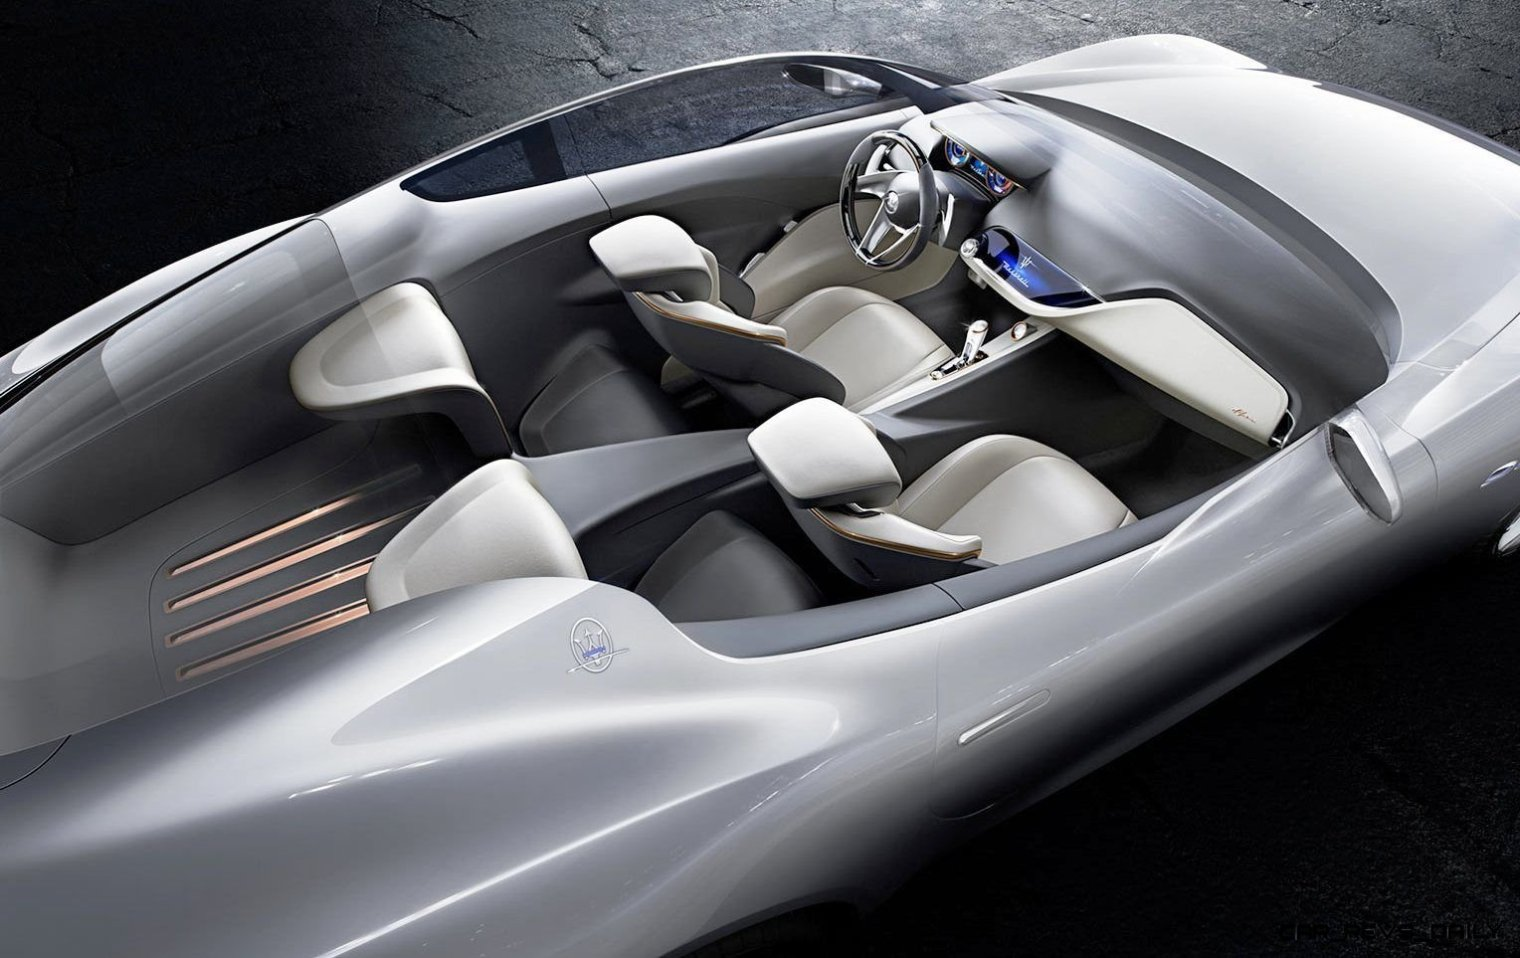 Alfieri Maserati Concept -- Analytical Assessment of the Trident's Flagship Prototype -- 52 Photos, Sketches, Reveal Images 24